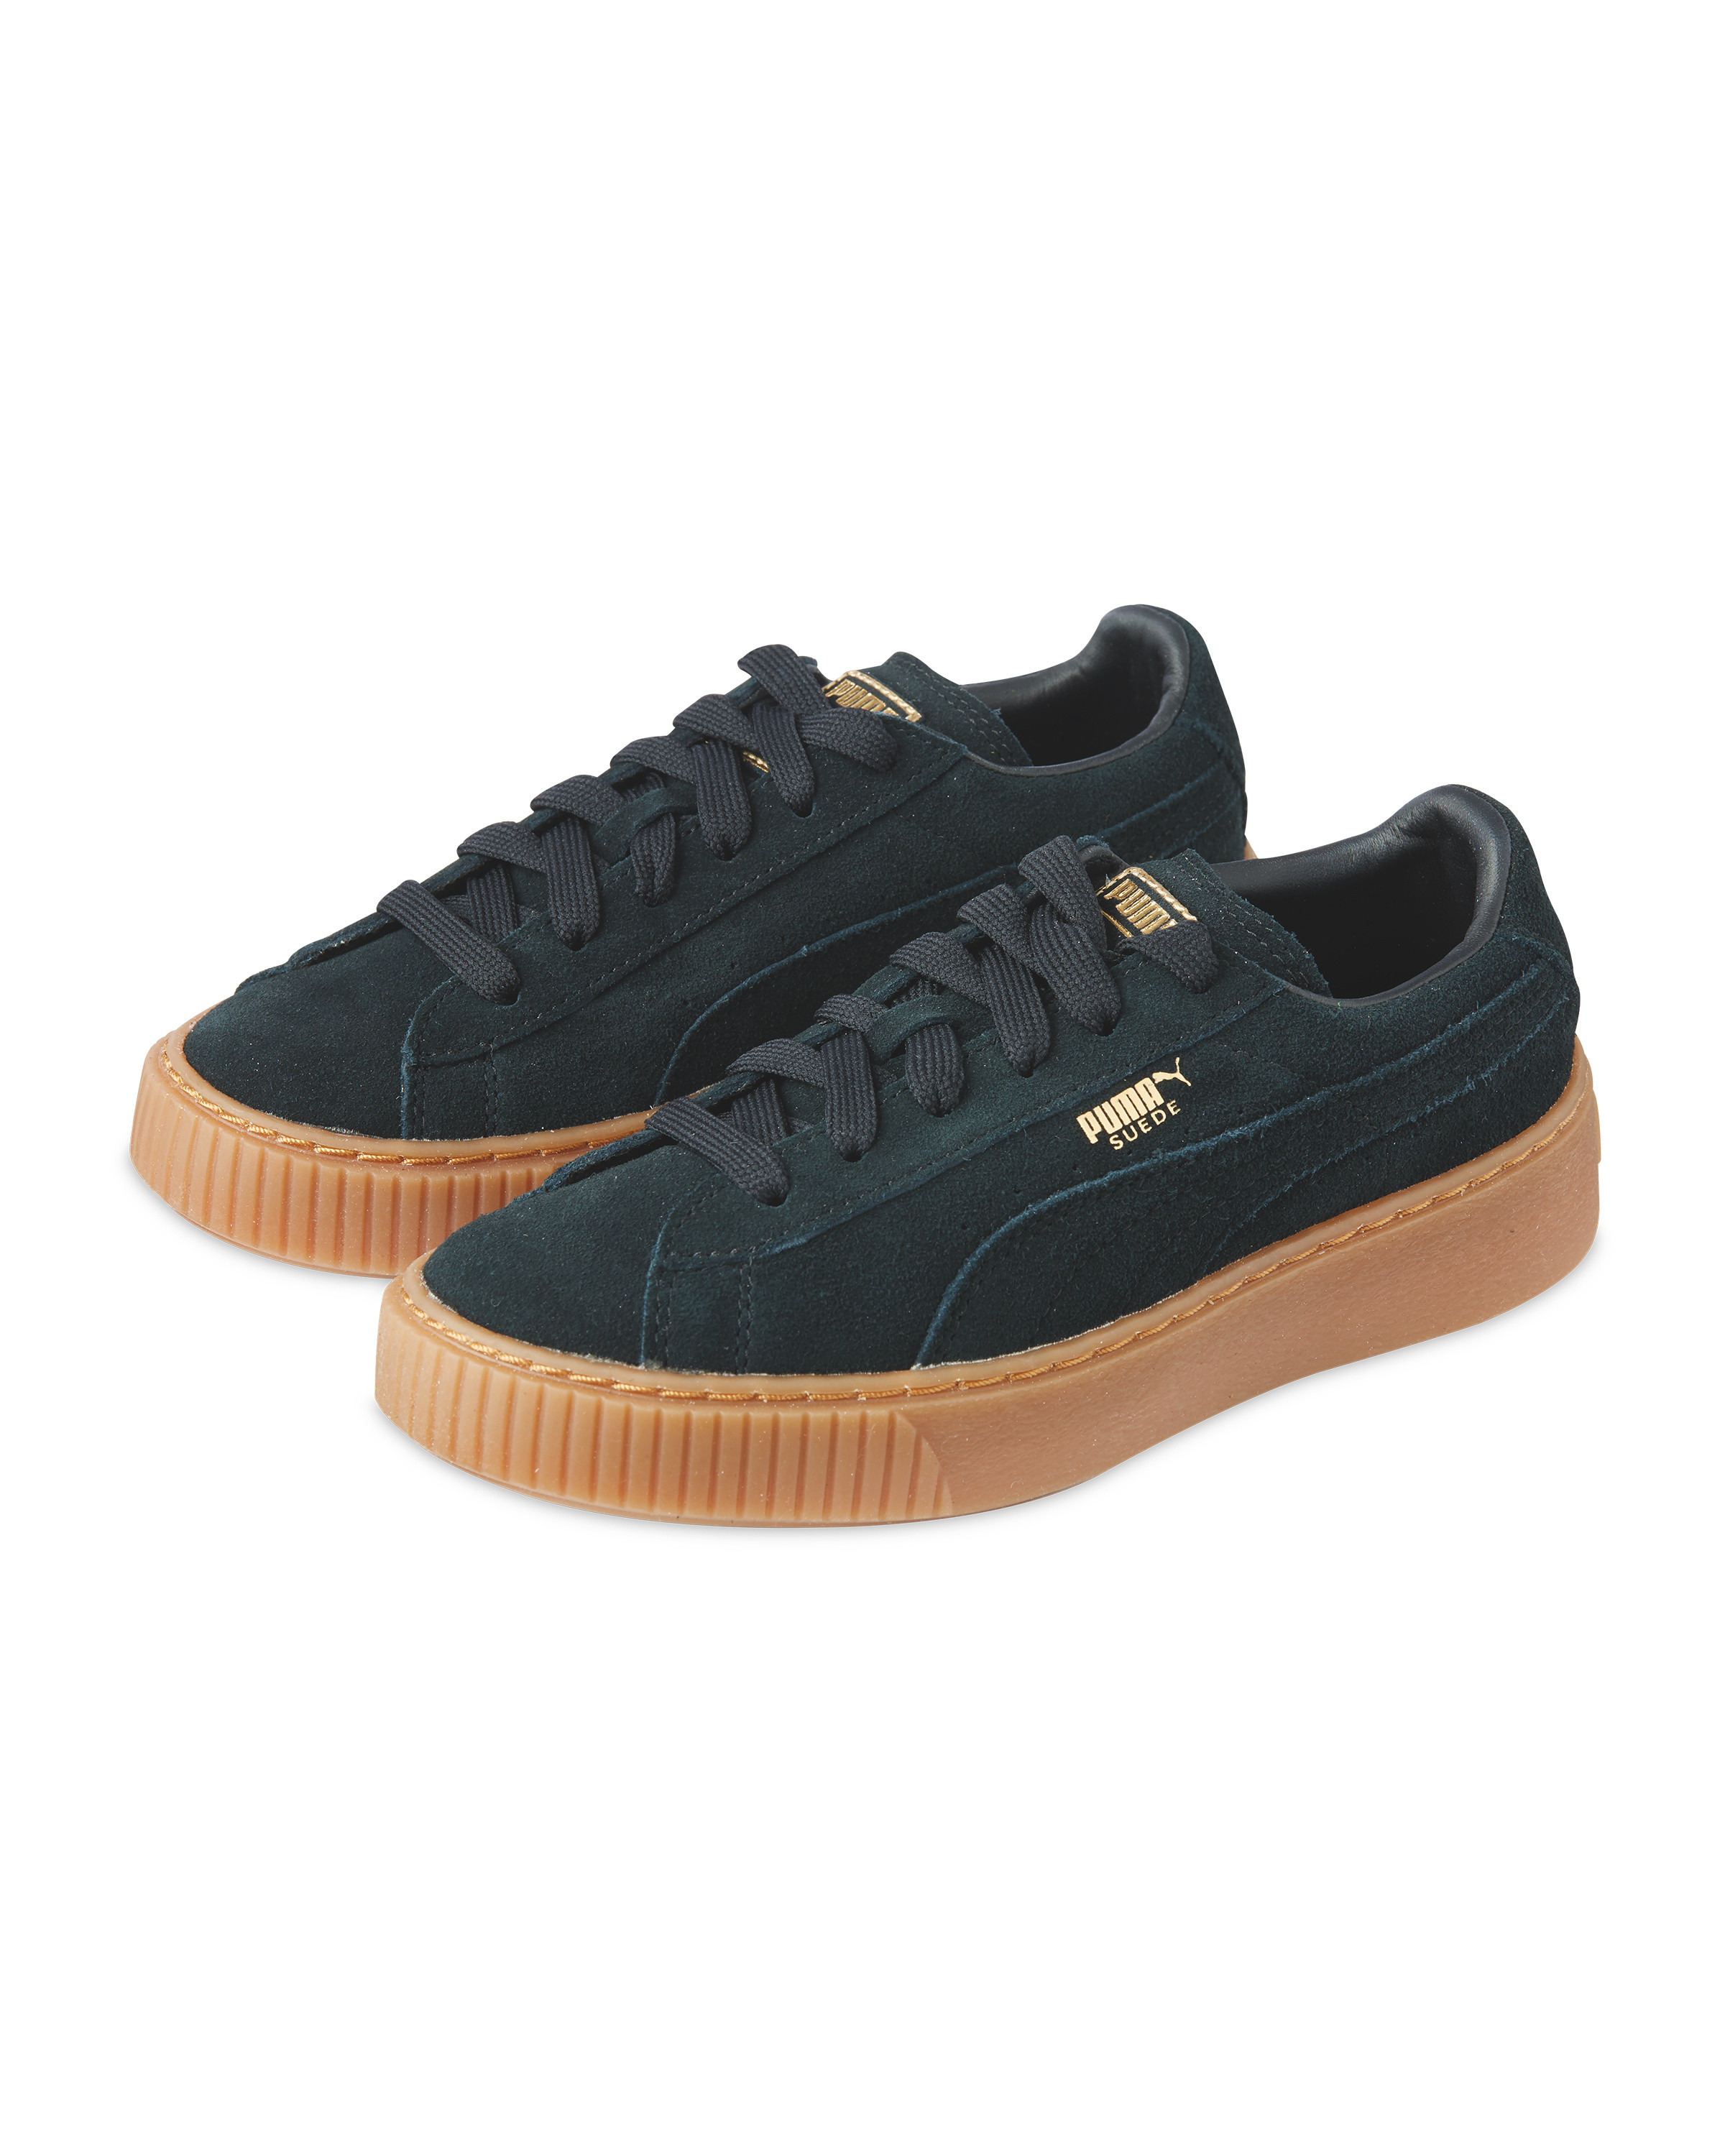 lowest price 84c13 35330 Kids' Puma Suede Platform Trainer